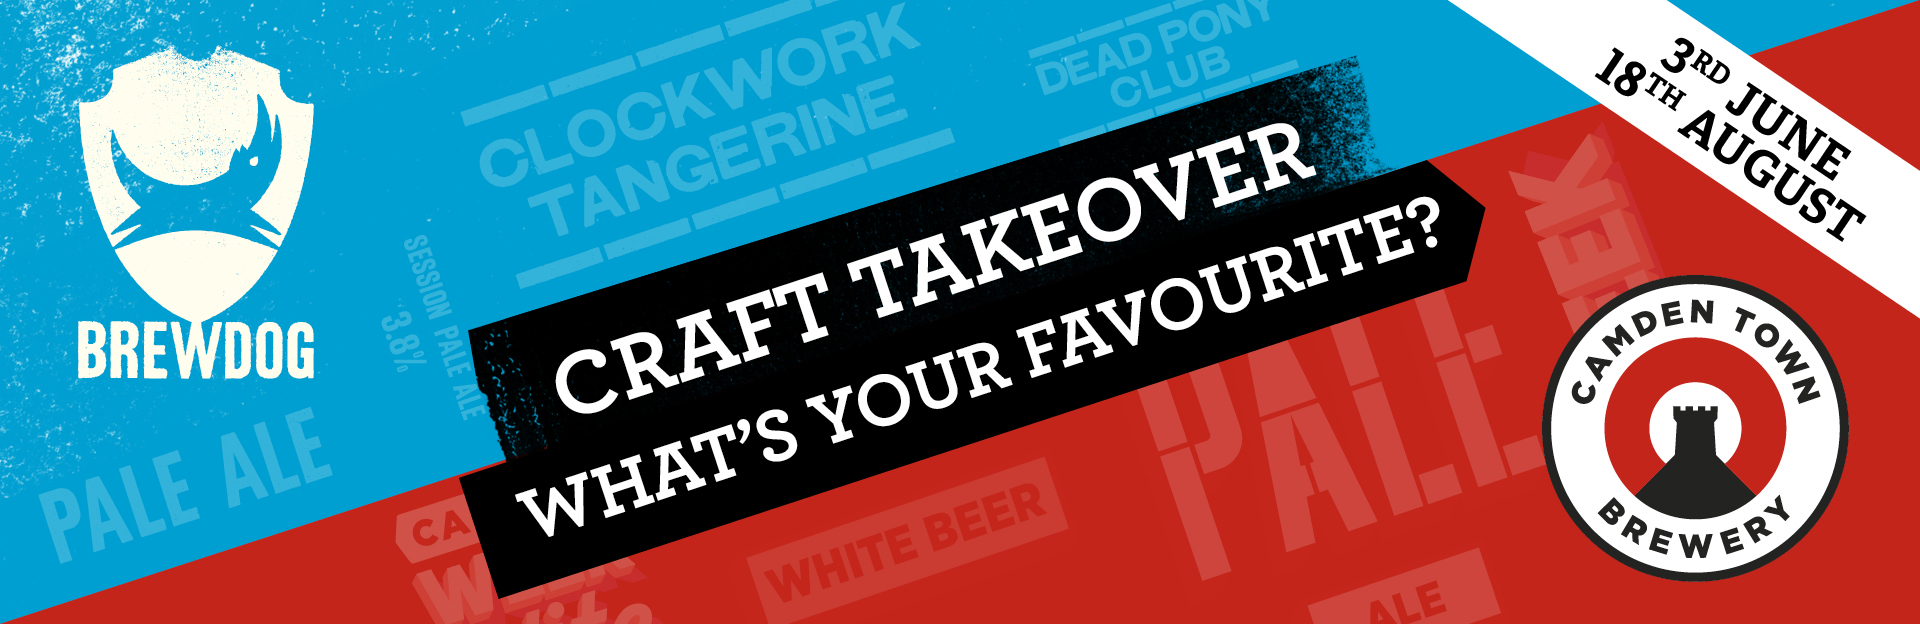 Craft Takeover at The Nursery Tavern